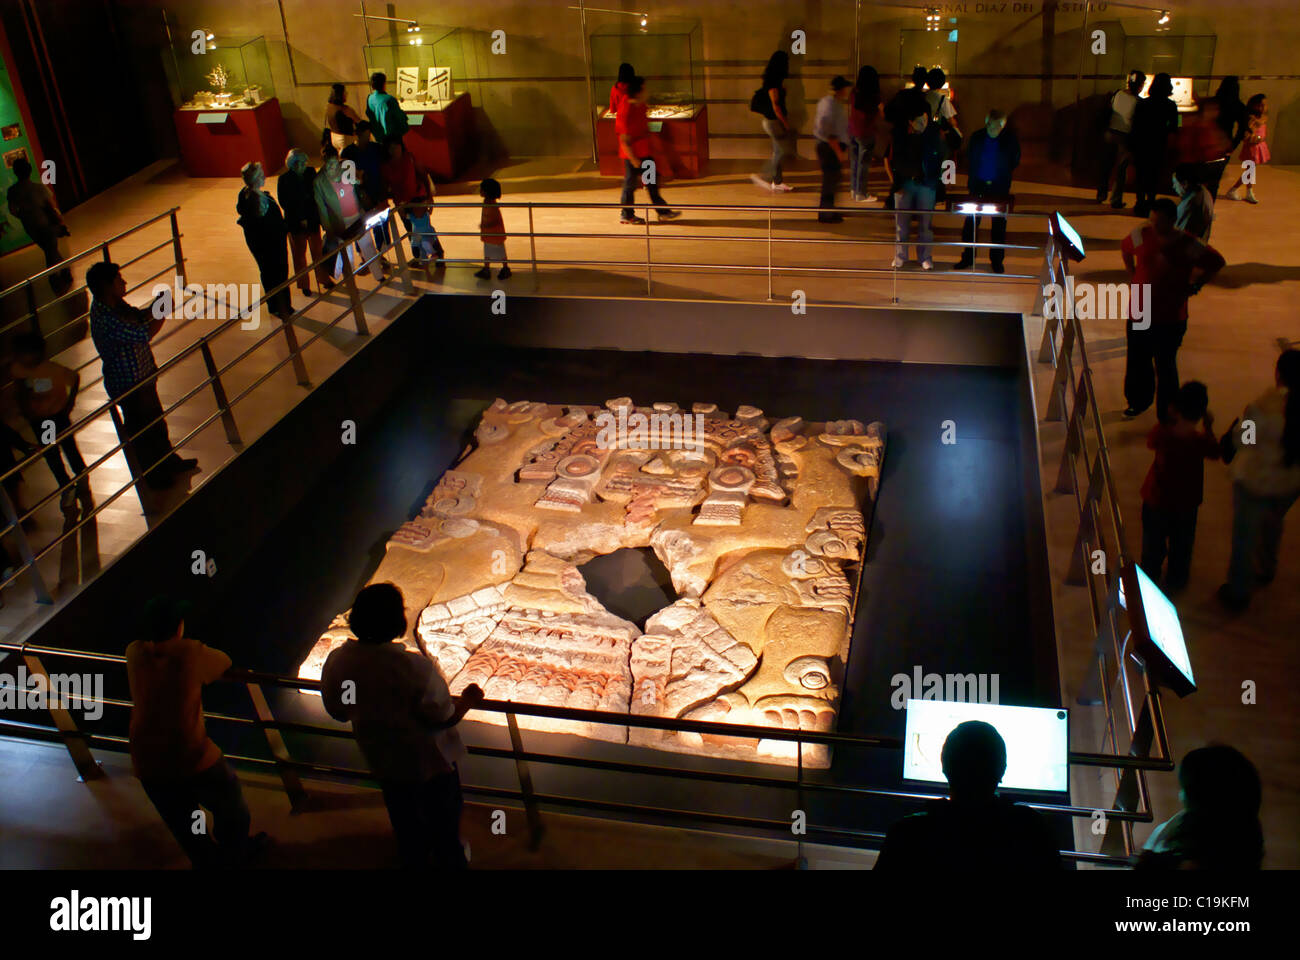 People at the Tlaltecuhtli sculpture exhibit in the Templo Mayor Museum, Mexico City - Stock Image